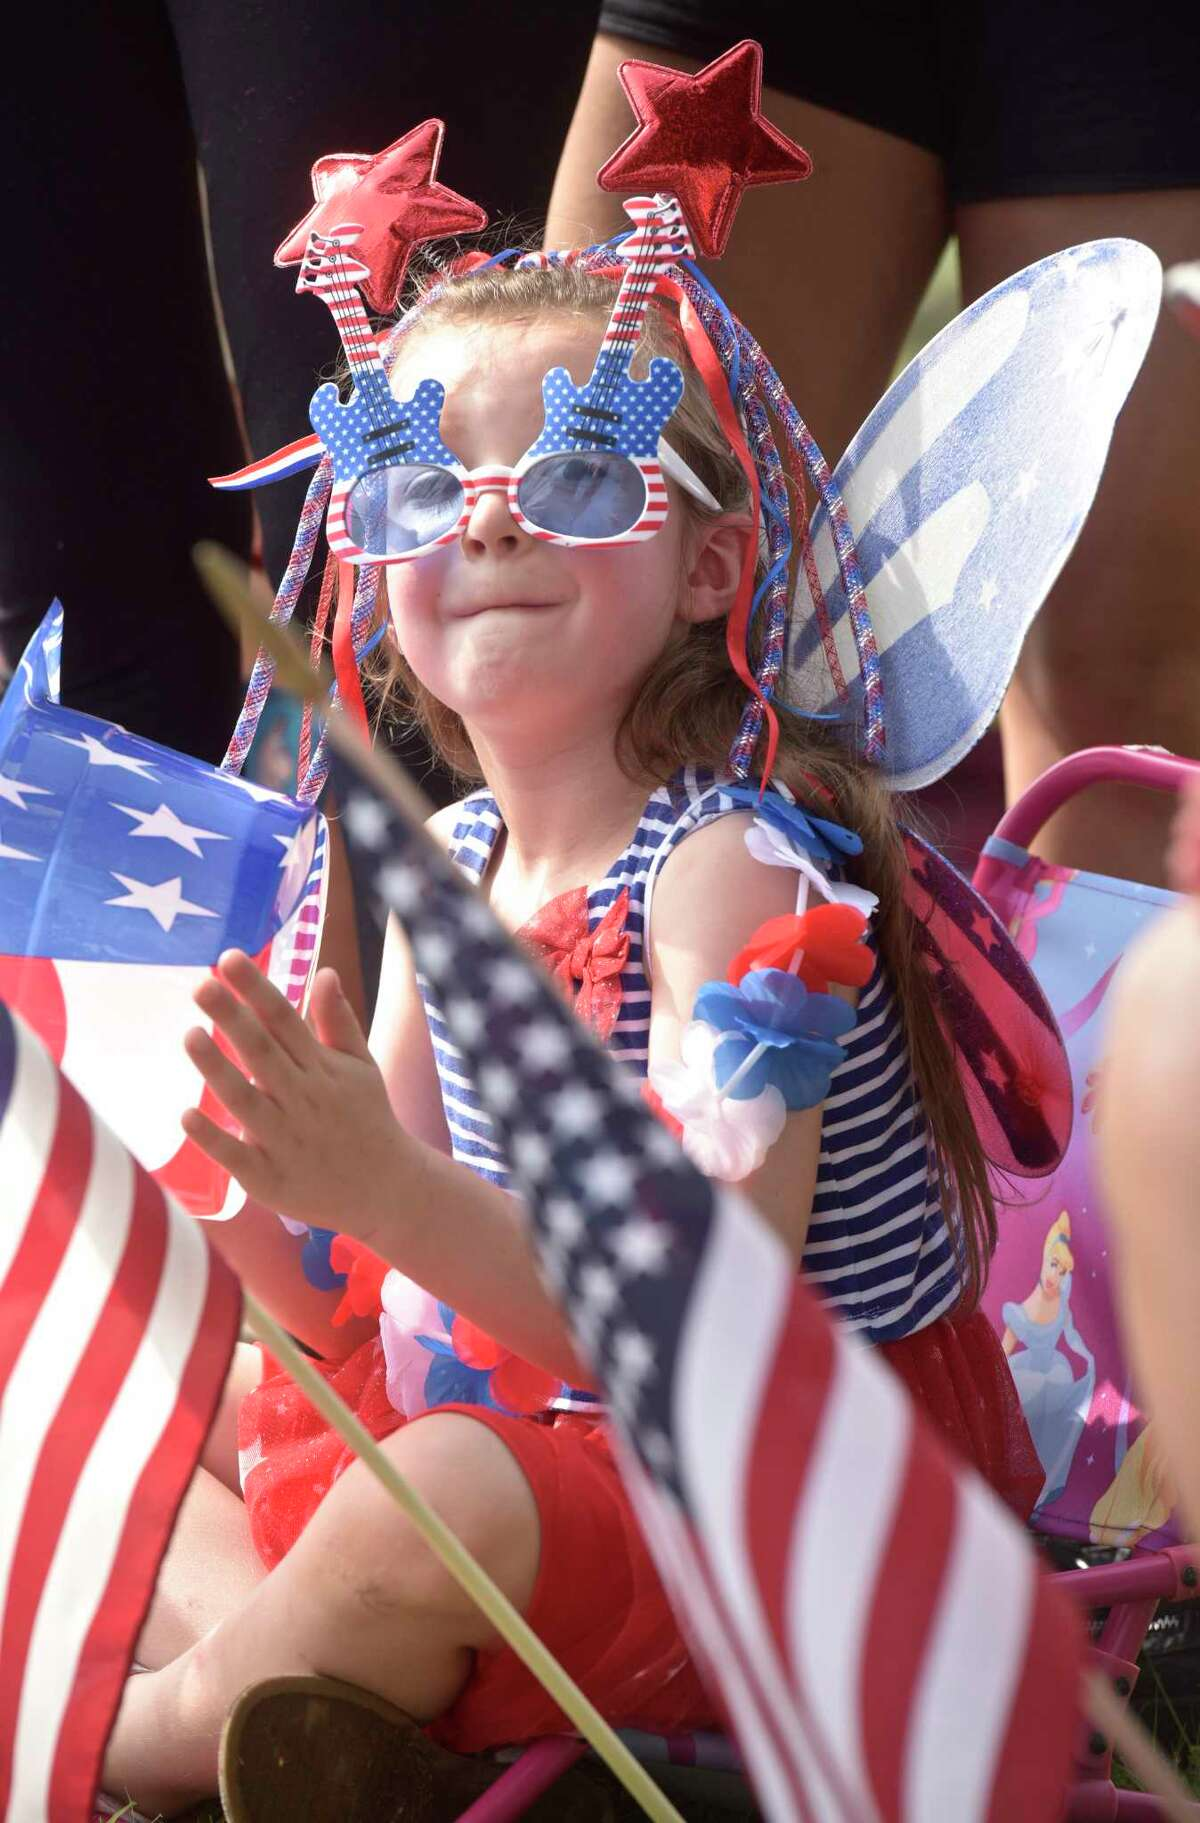 Cece Curatilo, 6, of New Fairfield, is all red, white & blue as she watches the annual Independence Day Parade hosted by the New Fairfield Lions Club. Wednesday, July 4, 2018, in New Fairfield, Conn.